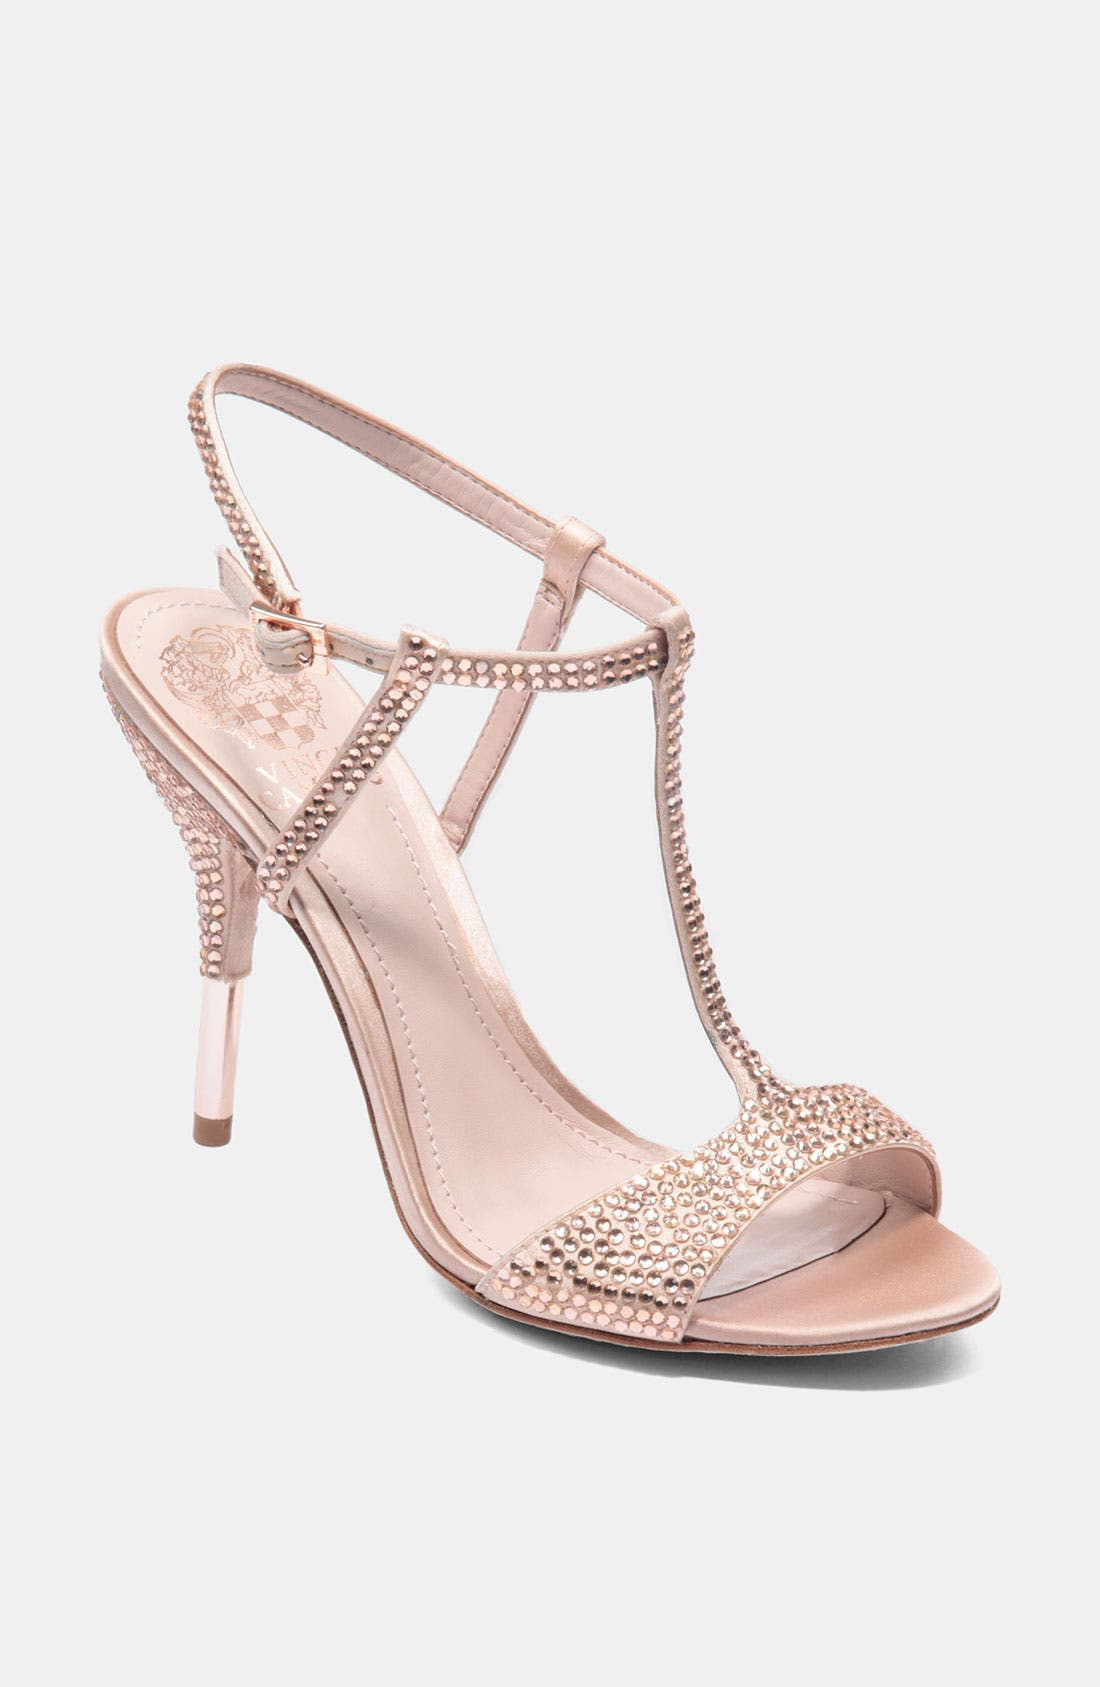 Alternate Image 1 Selected - Vince Camuto 'Kheringtn' Sandal